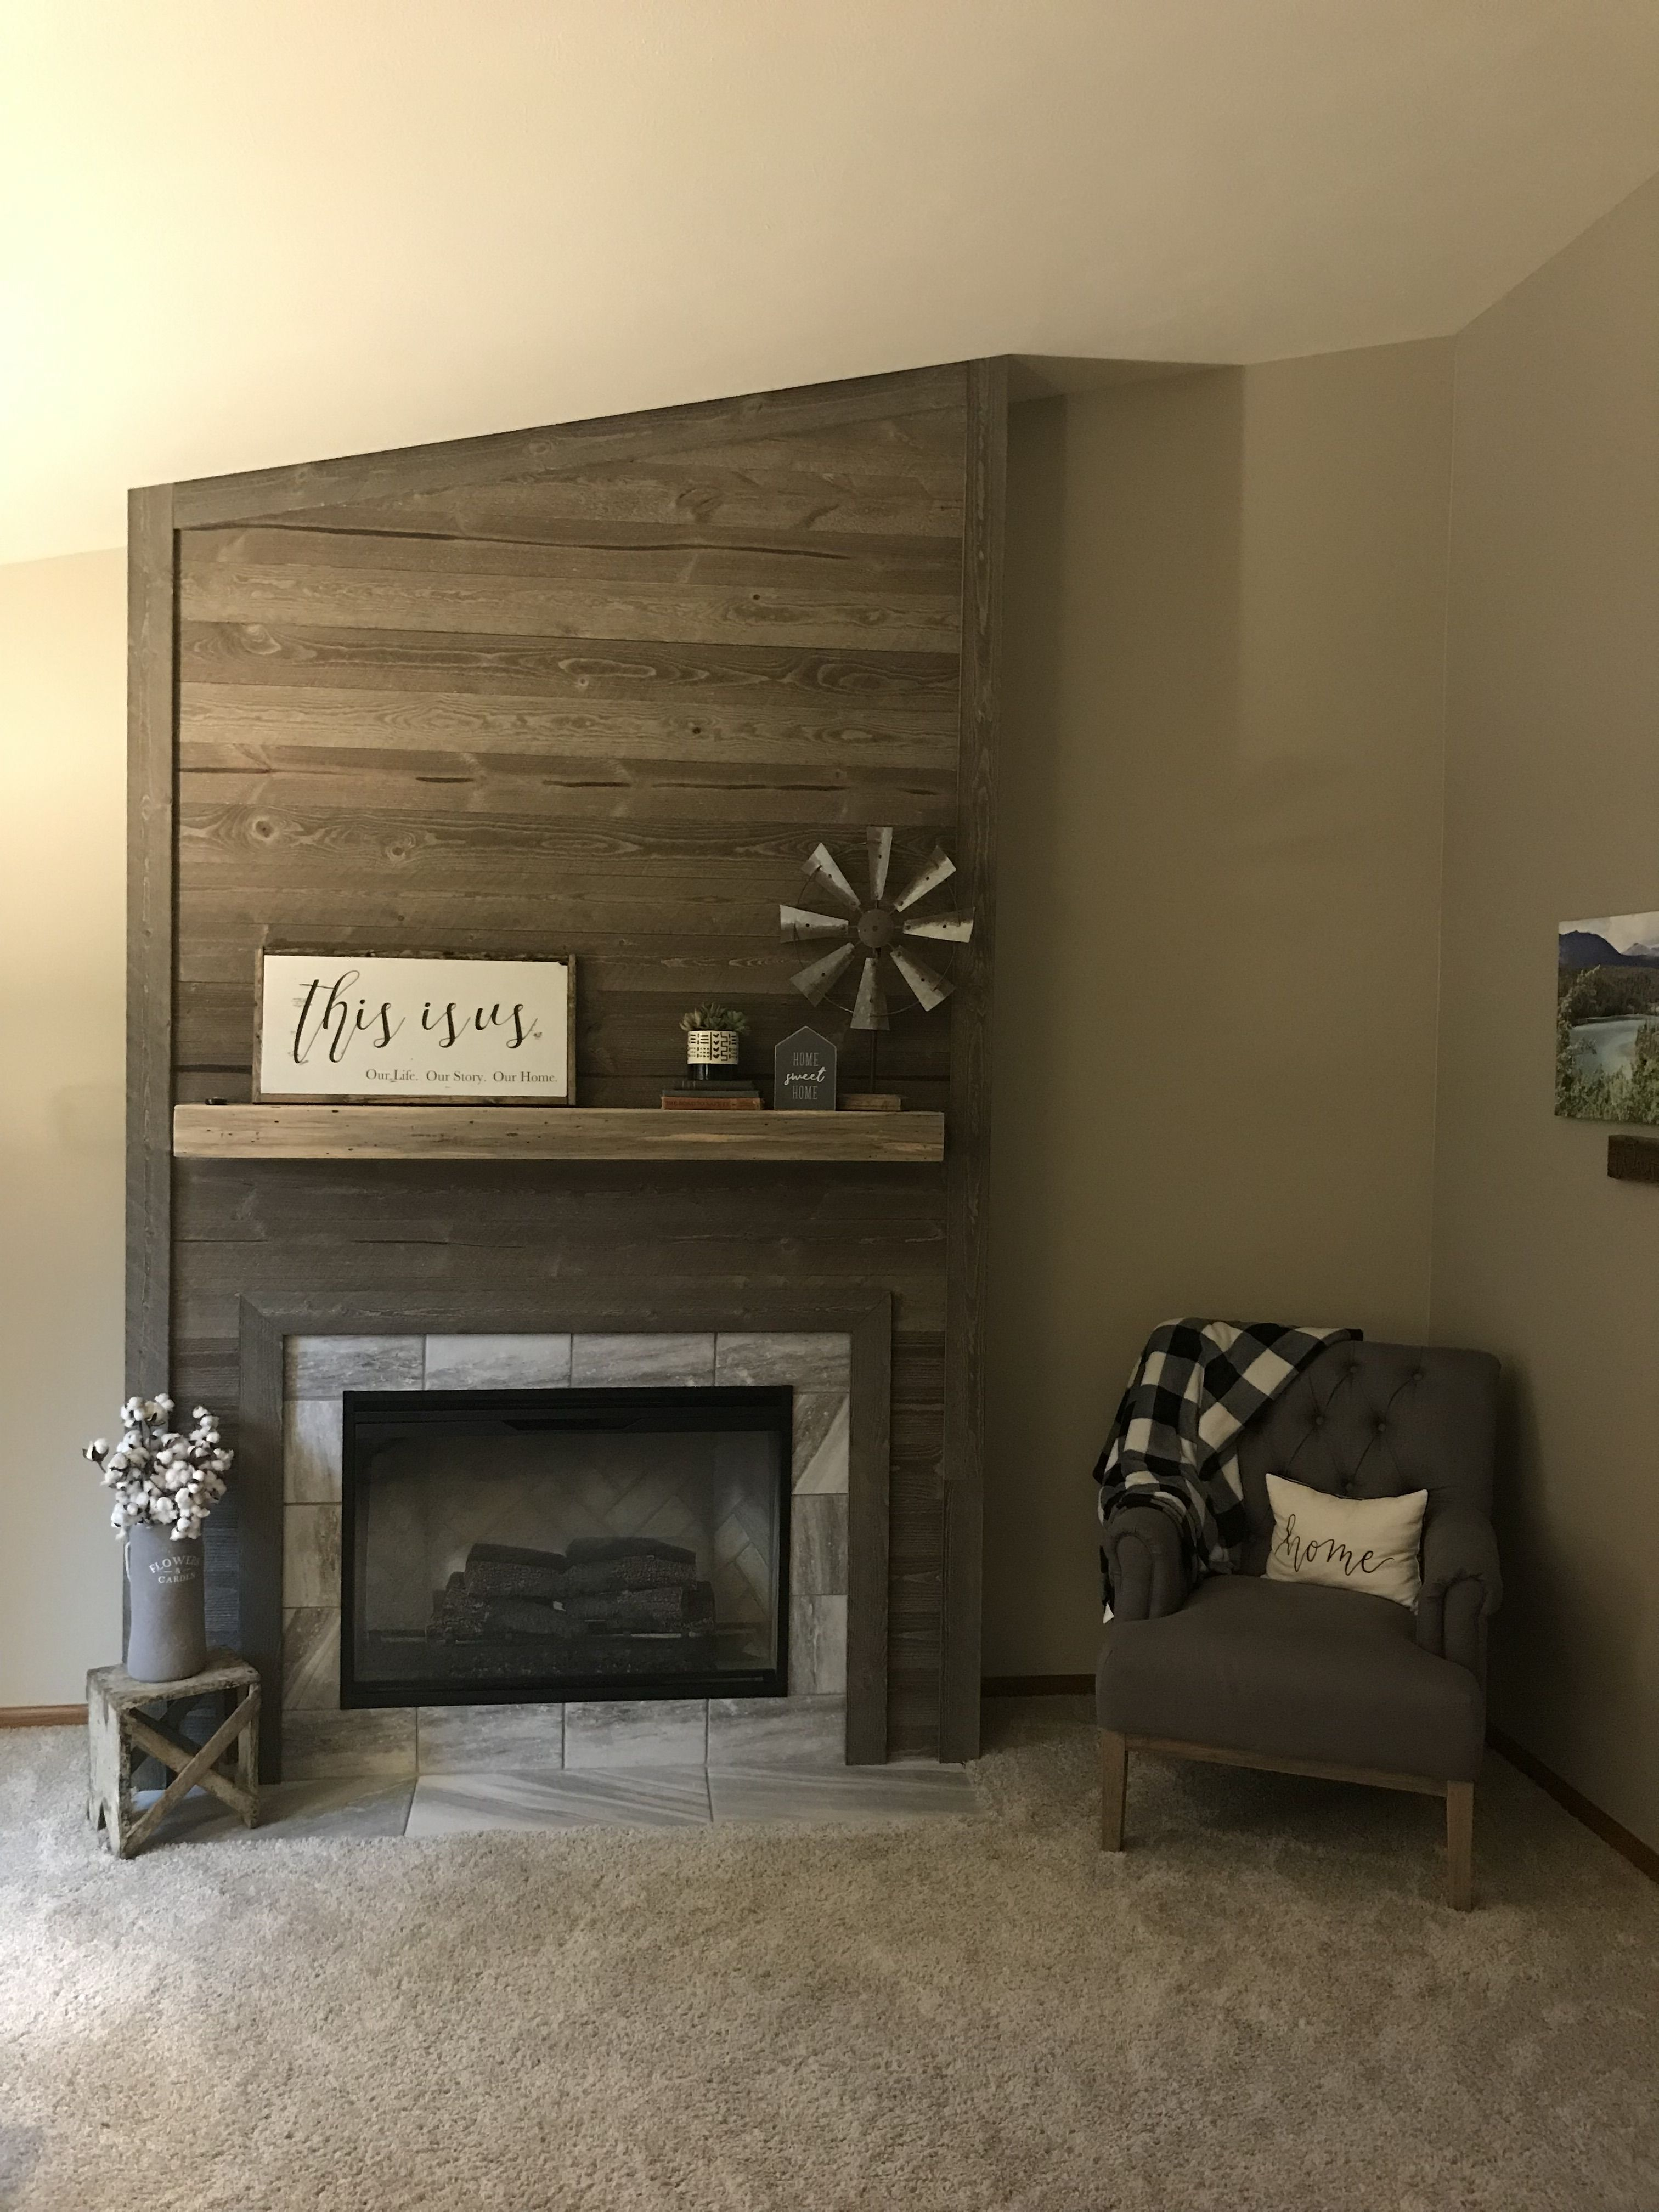 Wood Fireplace Built Using Tongue And Groove Wood From Home Depot Mantle Was Made With Tongue And Groove Reclaimed Bee Wood Fireplace Fireplace Country Decor